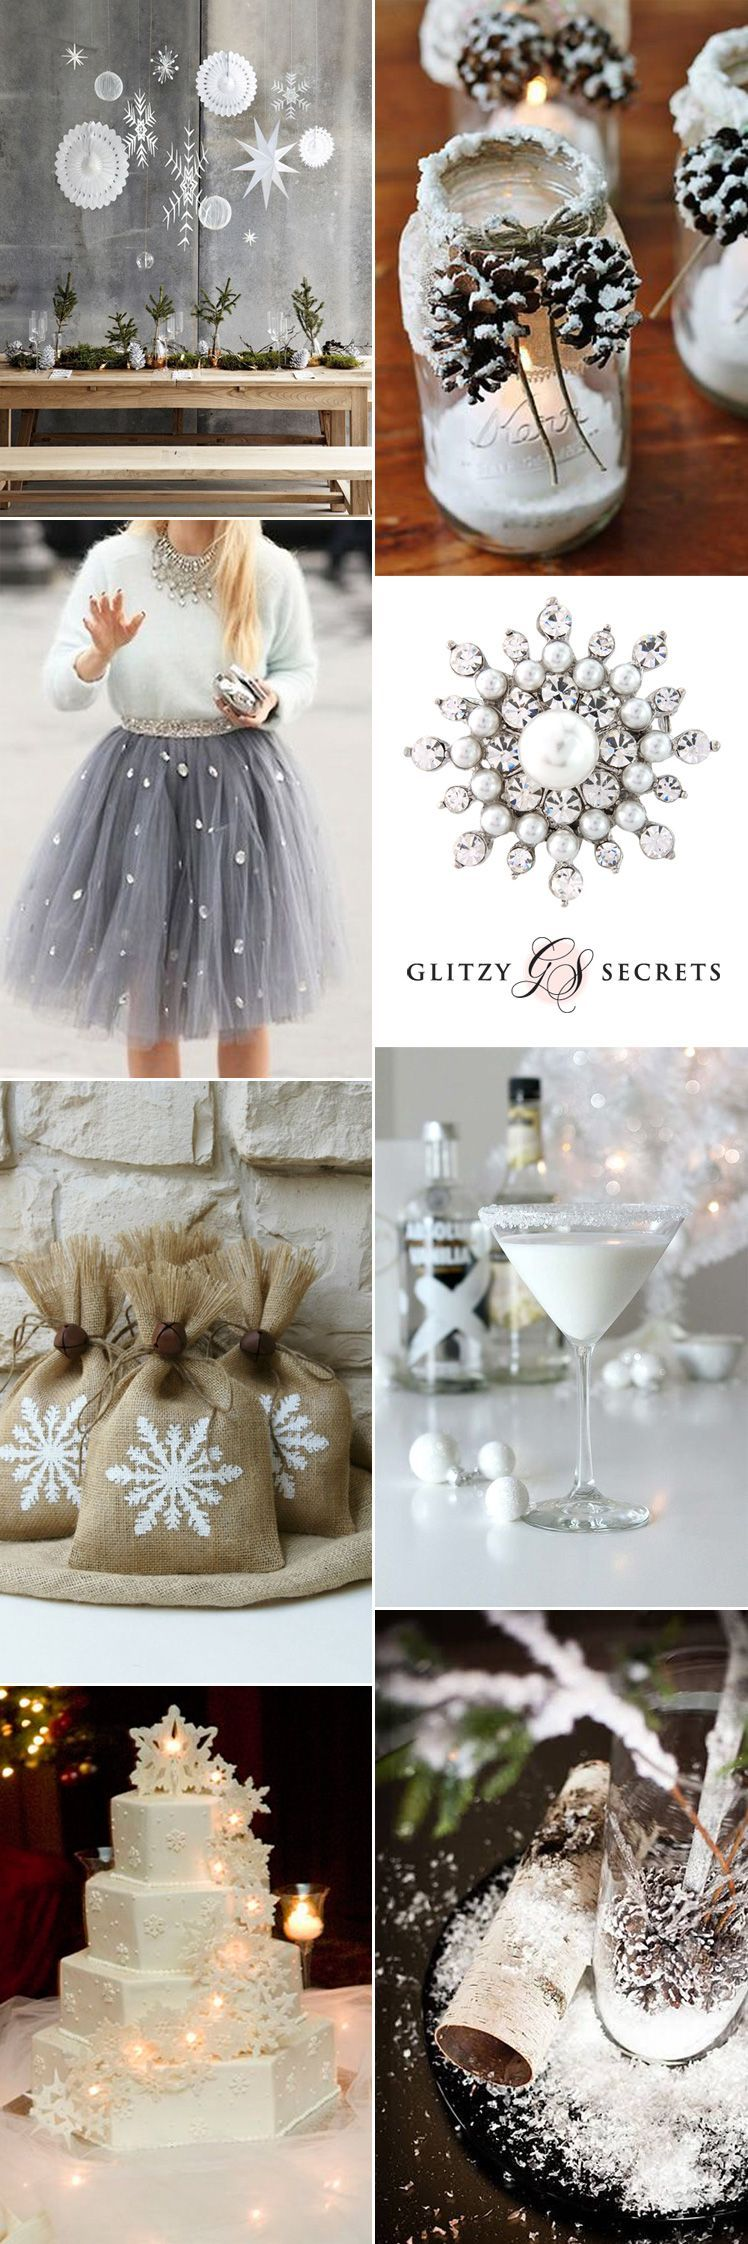 Beautiful ideas for a snowflake wedding theme on GS Inspiration ...